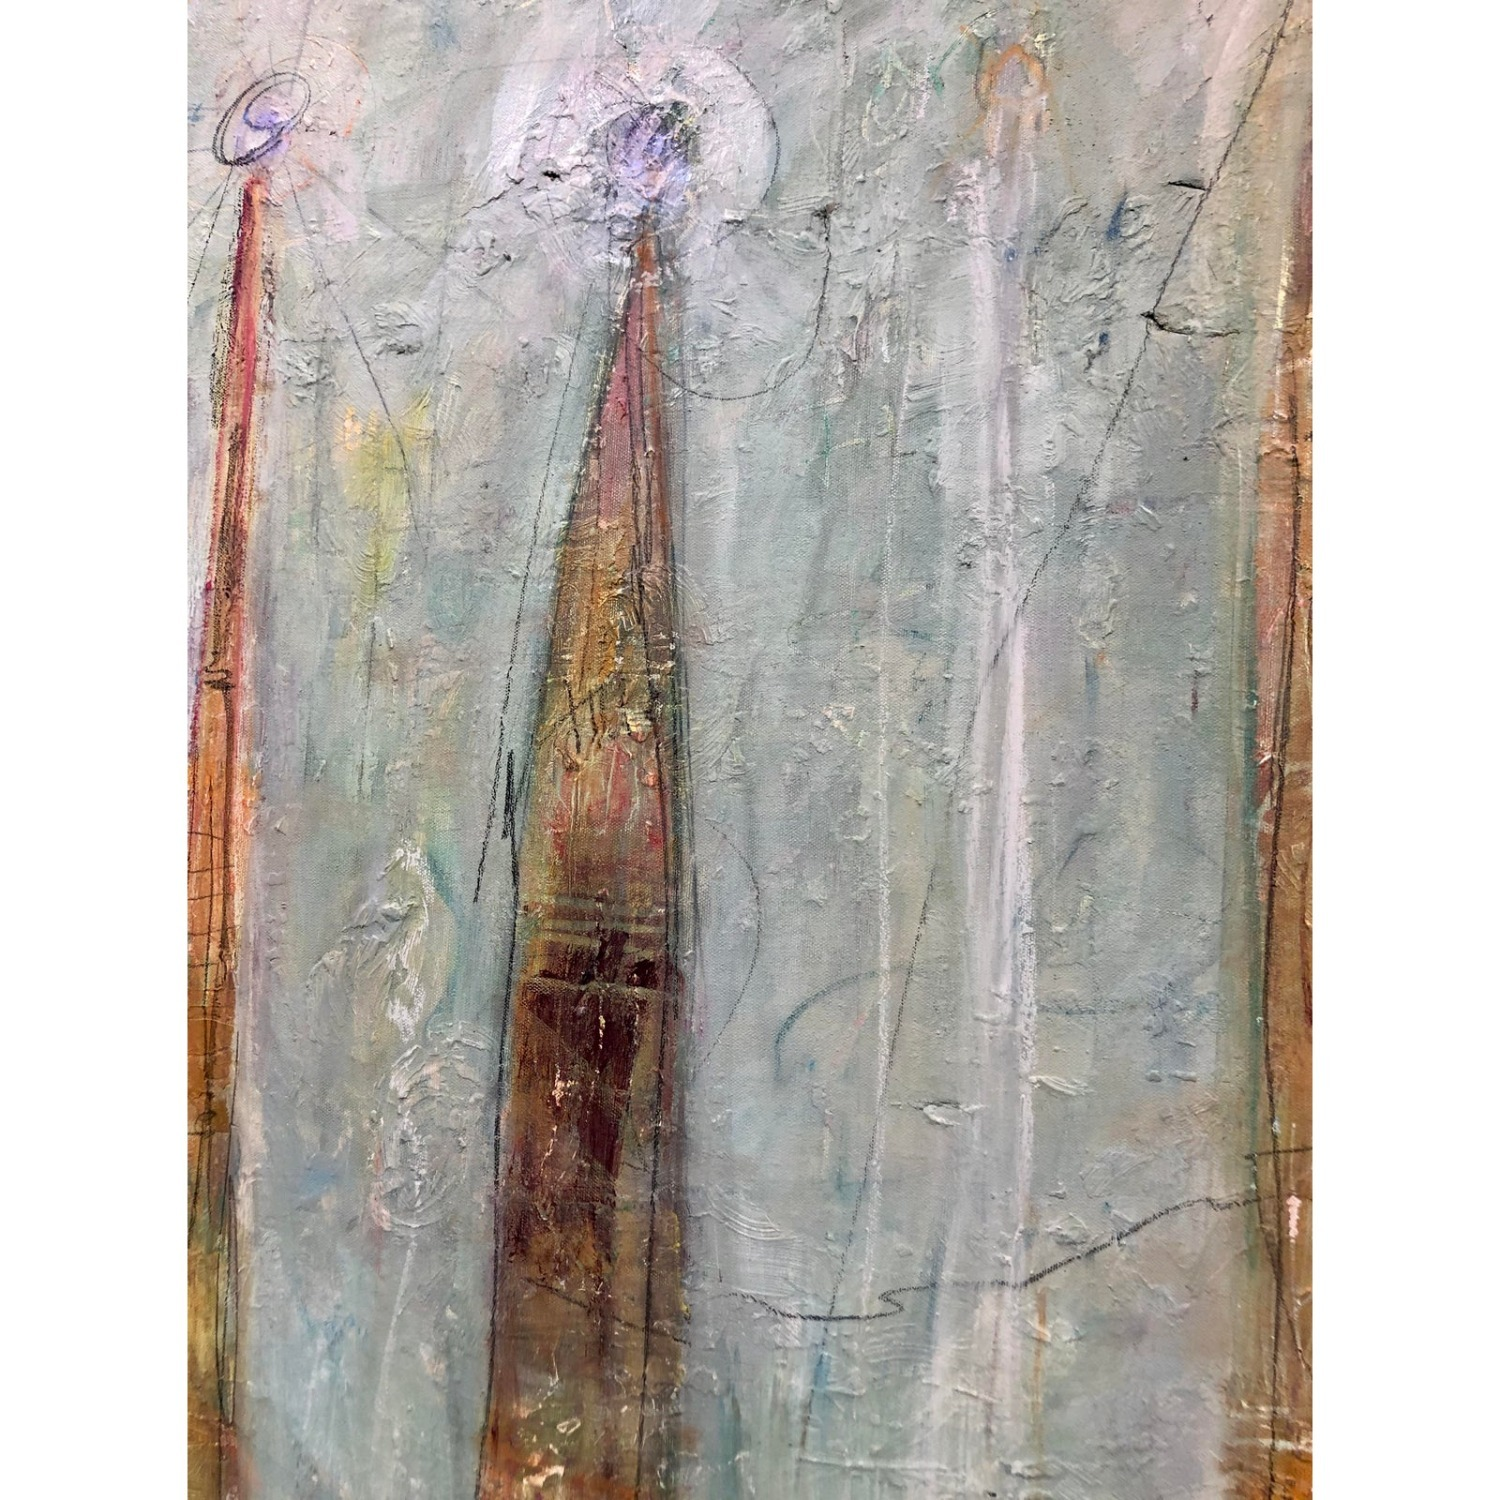 Upward Original Abstract Expressionist Painting - image-4